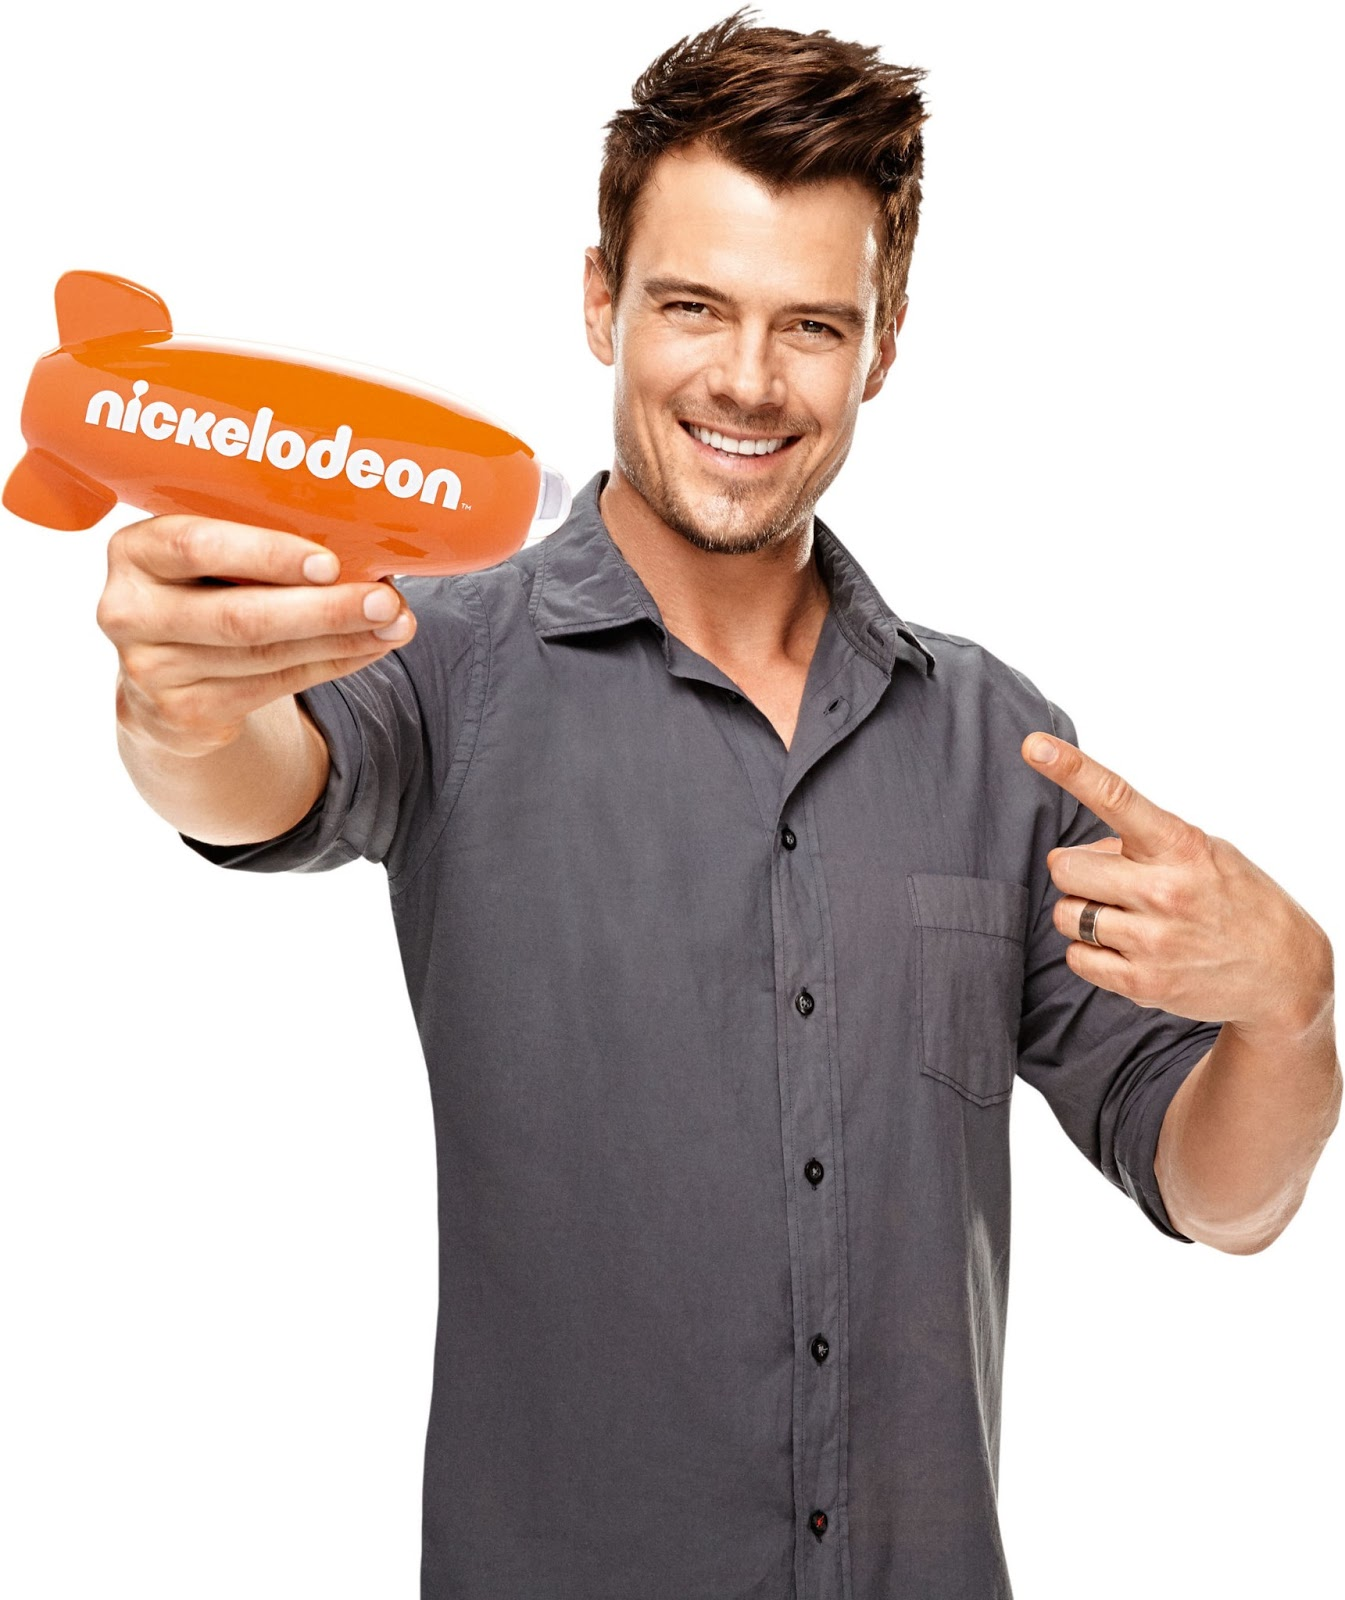 http://1.bp.blogspot.com/-T3mCK2rt4Og/URvfKC5vU1I/AAAAAAAARZ4/GG85OM_3n48/s1600/Josh-Duhamel-Host-Presenter-Of-Nickelodeon-s-Nickelodeons-26th-Annual-Kids-Choice-Awards-2013-Press-Profile-Photo-Nick.jpg